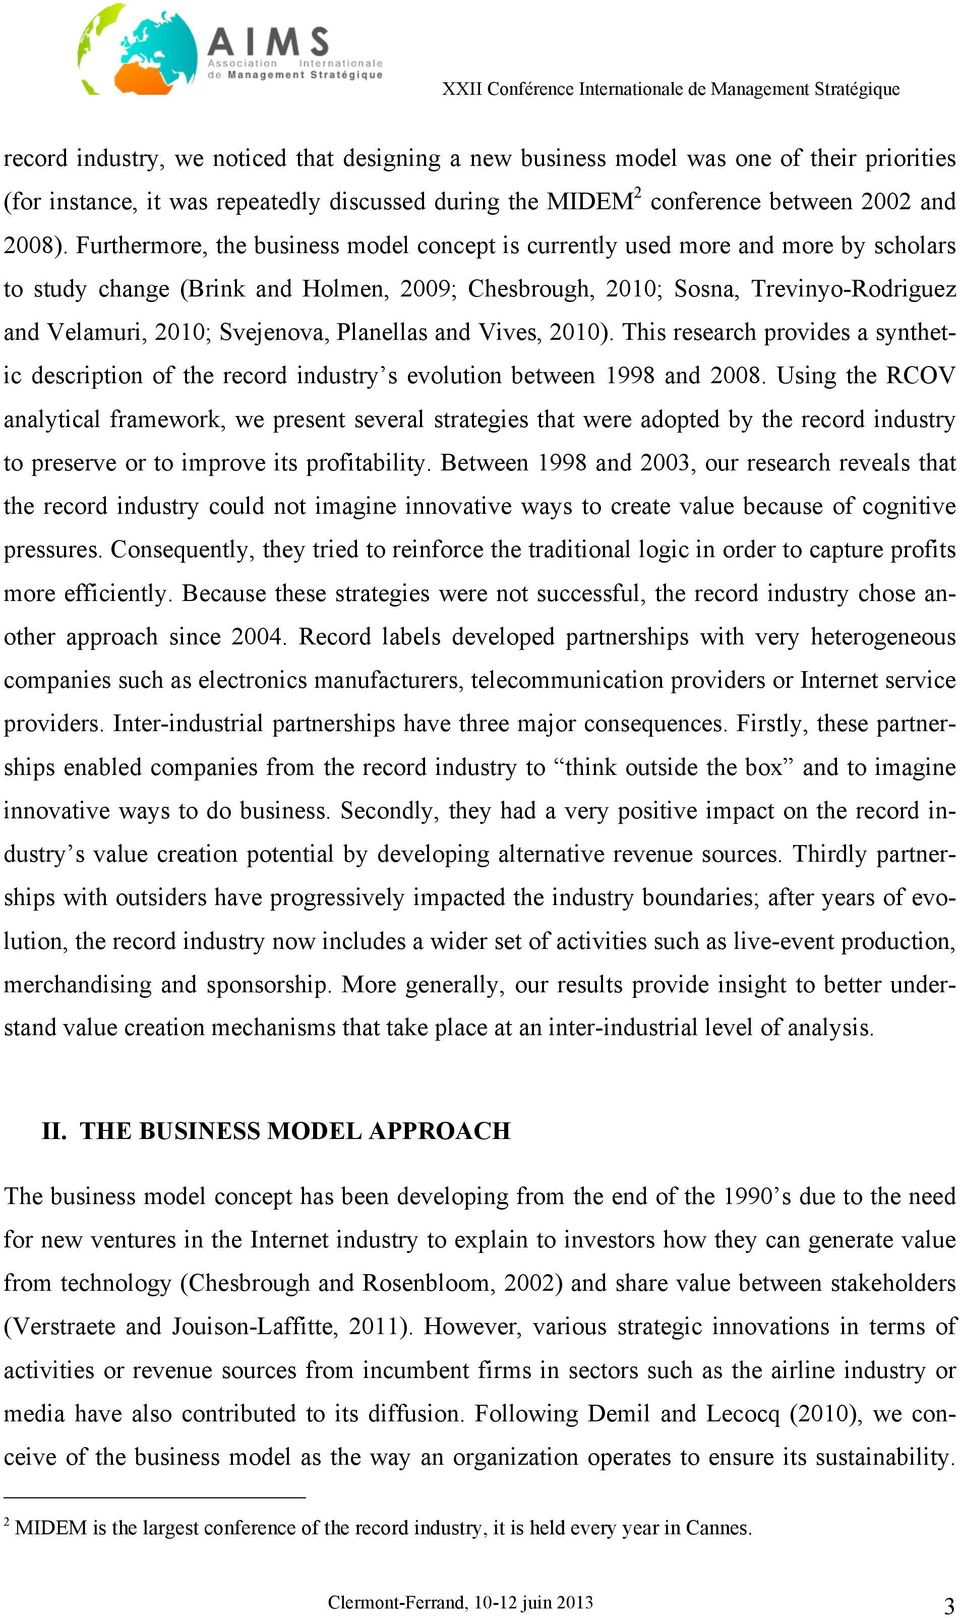 Planellas and Vives, 2010). This research provides a synthetic description of the record industry s evolution between 1998 and 2008.